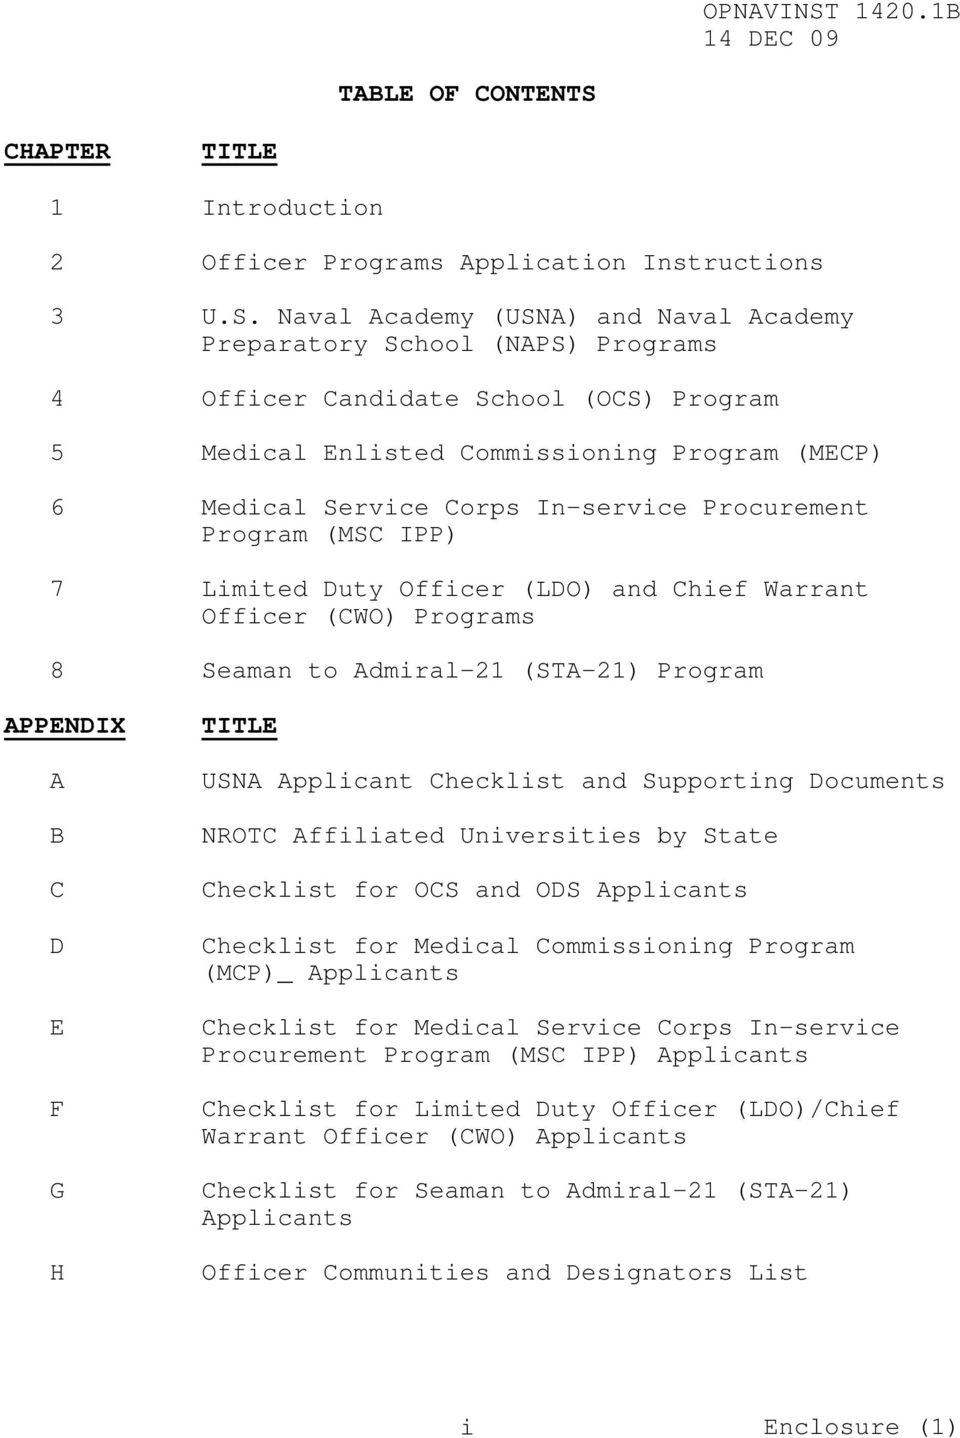 Naval Academy (USNA) and Naval Academy Preparatory School (NAPS) Programs 4 Officer Candidate School (OCS) Program 5 Medical Enlisted Commissioning Program (MECP) 6 Medical Service Corps In-service